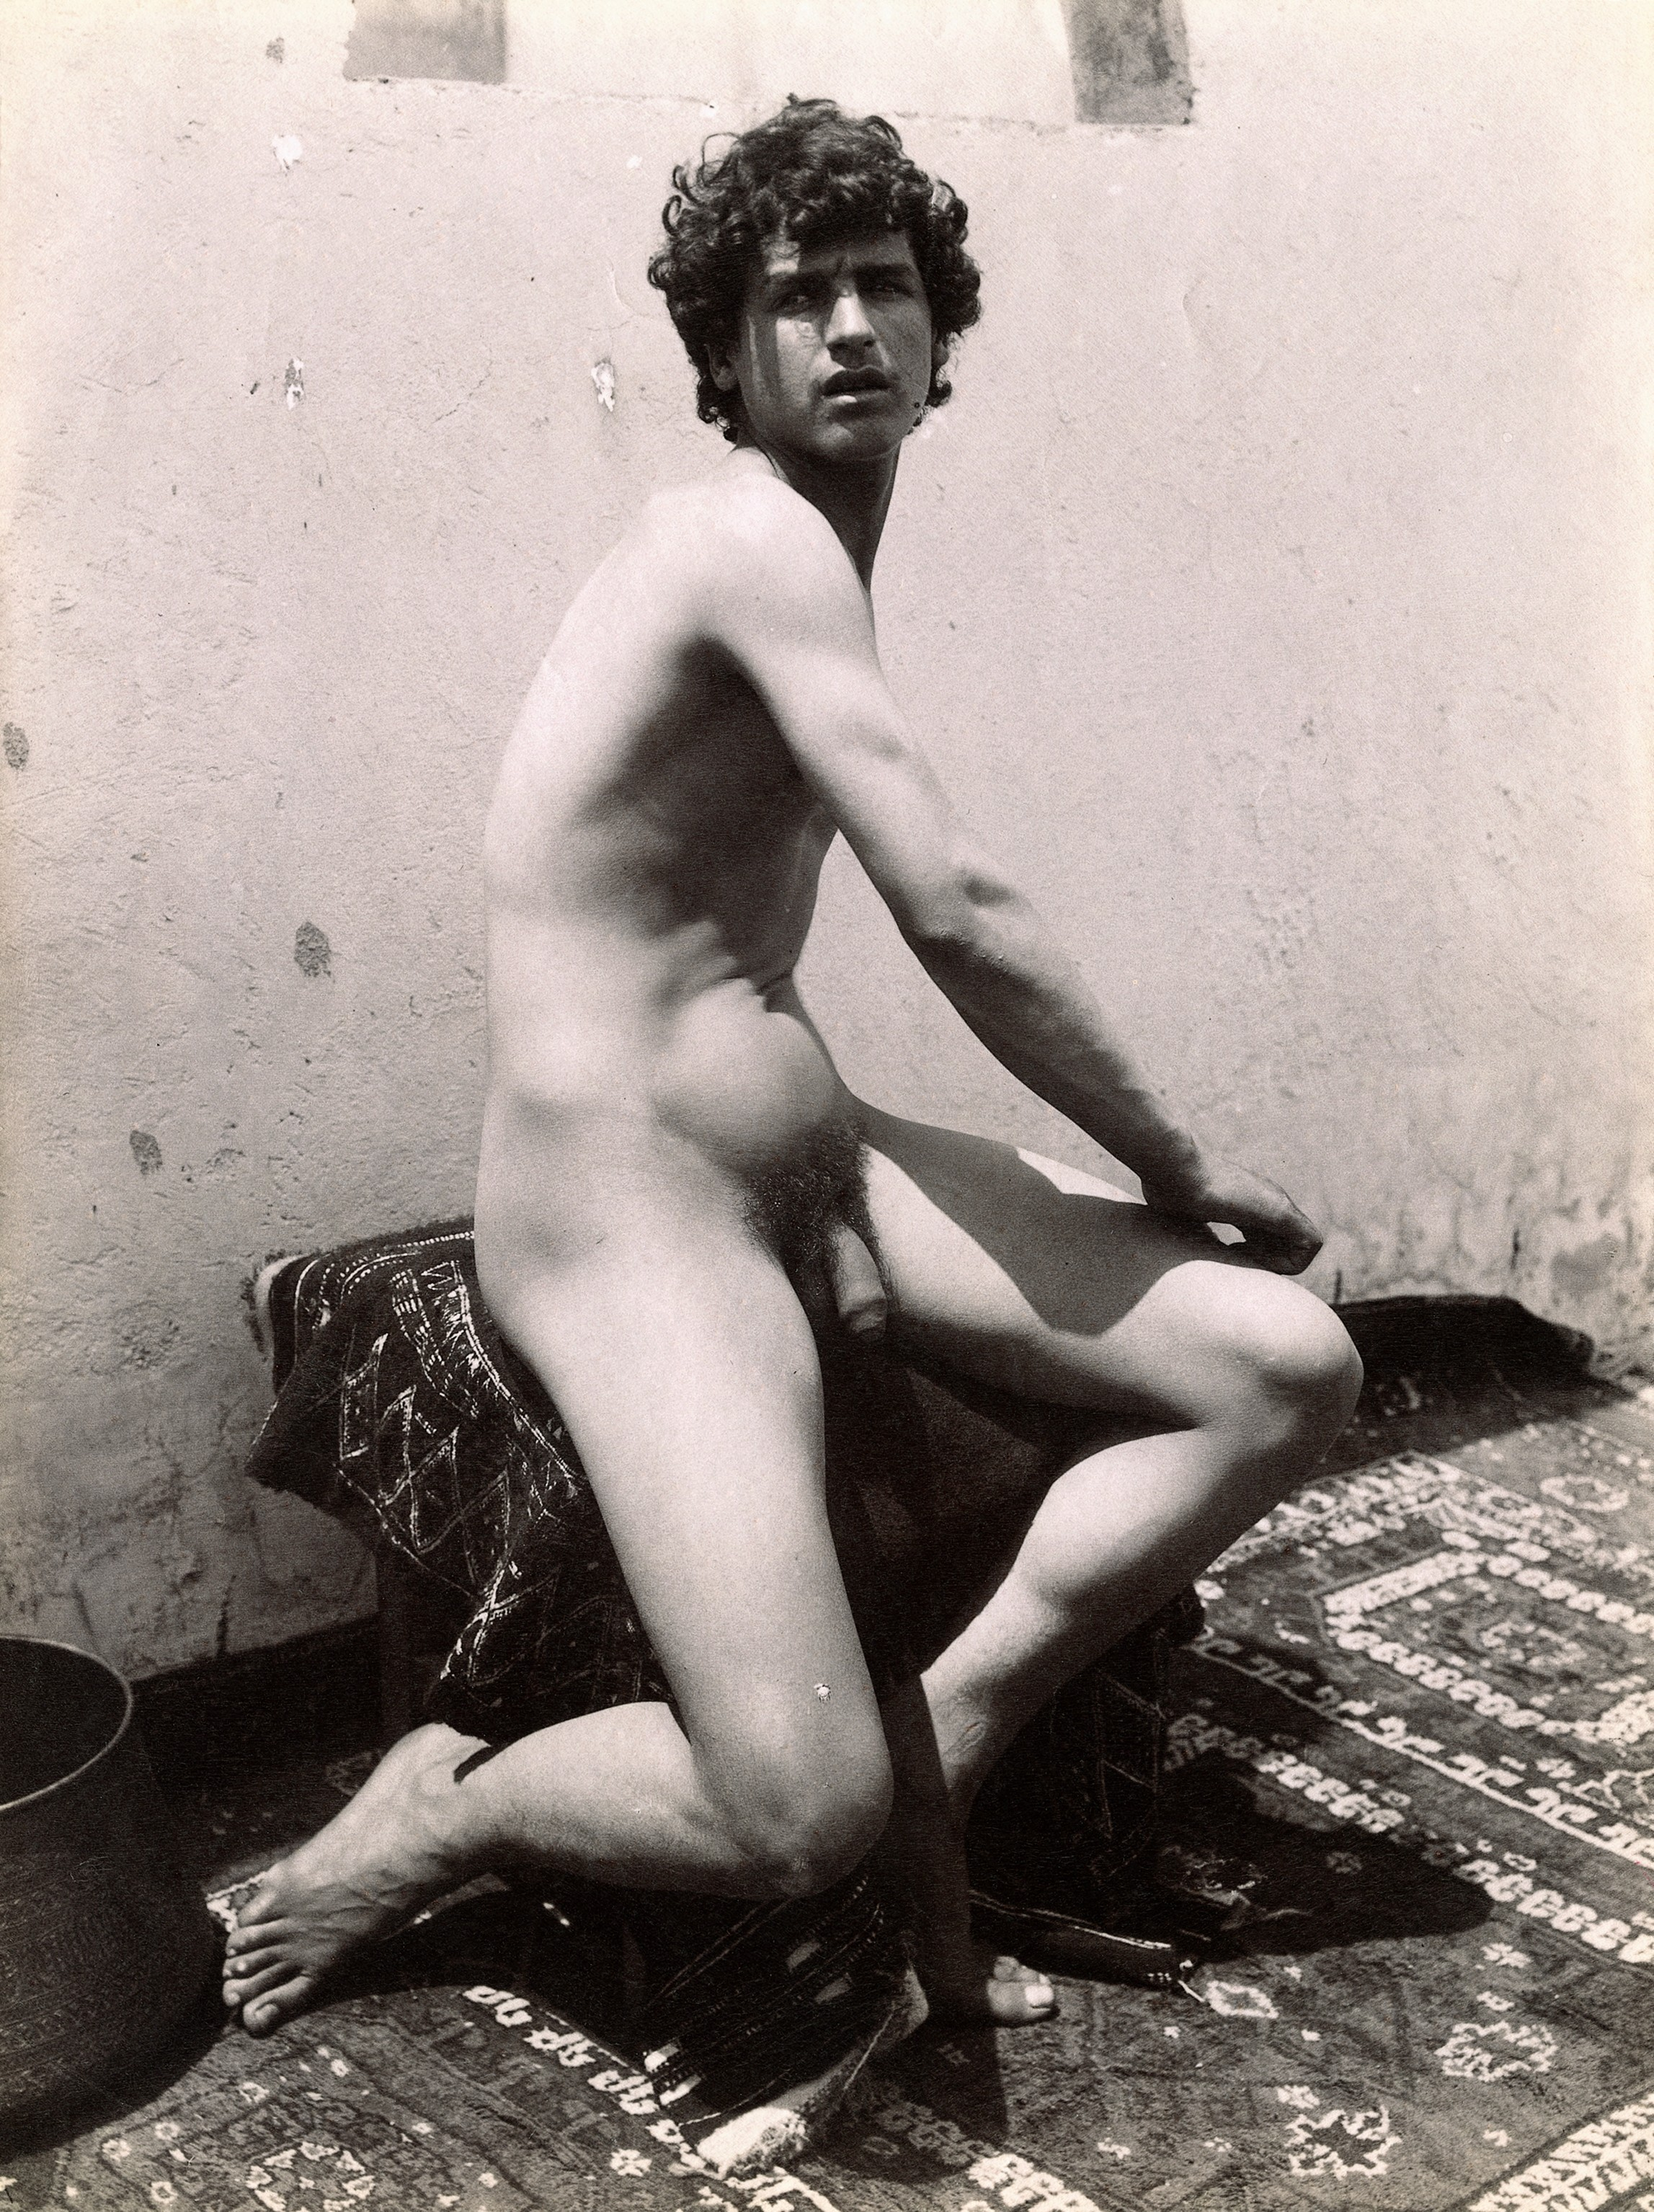 File:A Sicilian boy, posing naked outdoors. Photograph, ca ...: http://commons.wikimedia.org/wiki/File:A_Sicilian_boy,_posing_naked_outdoors._Photograph,_ca.1900,_Wellcome_V0048535.jpg